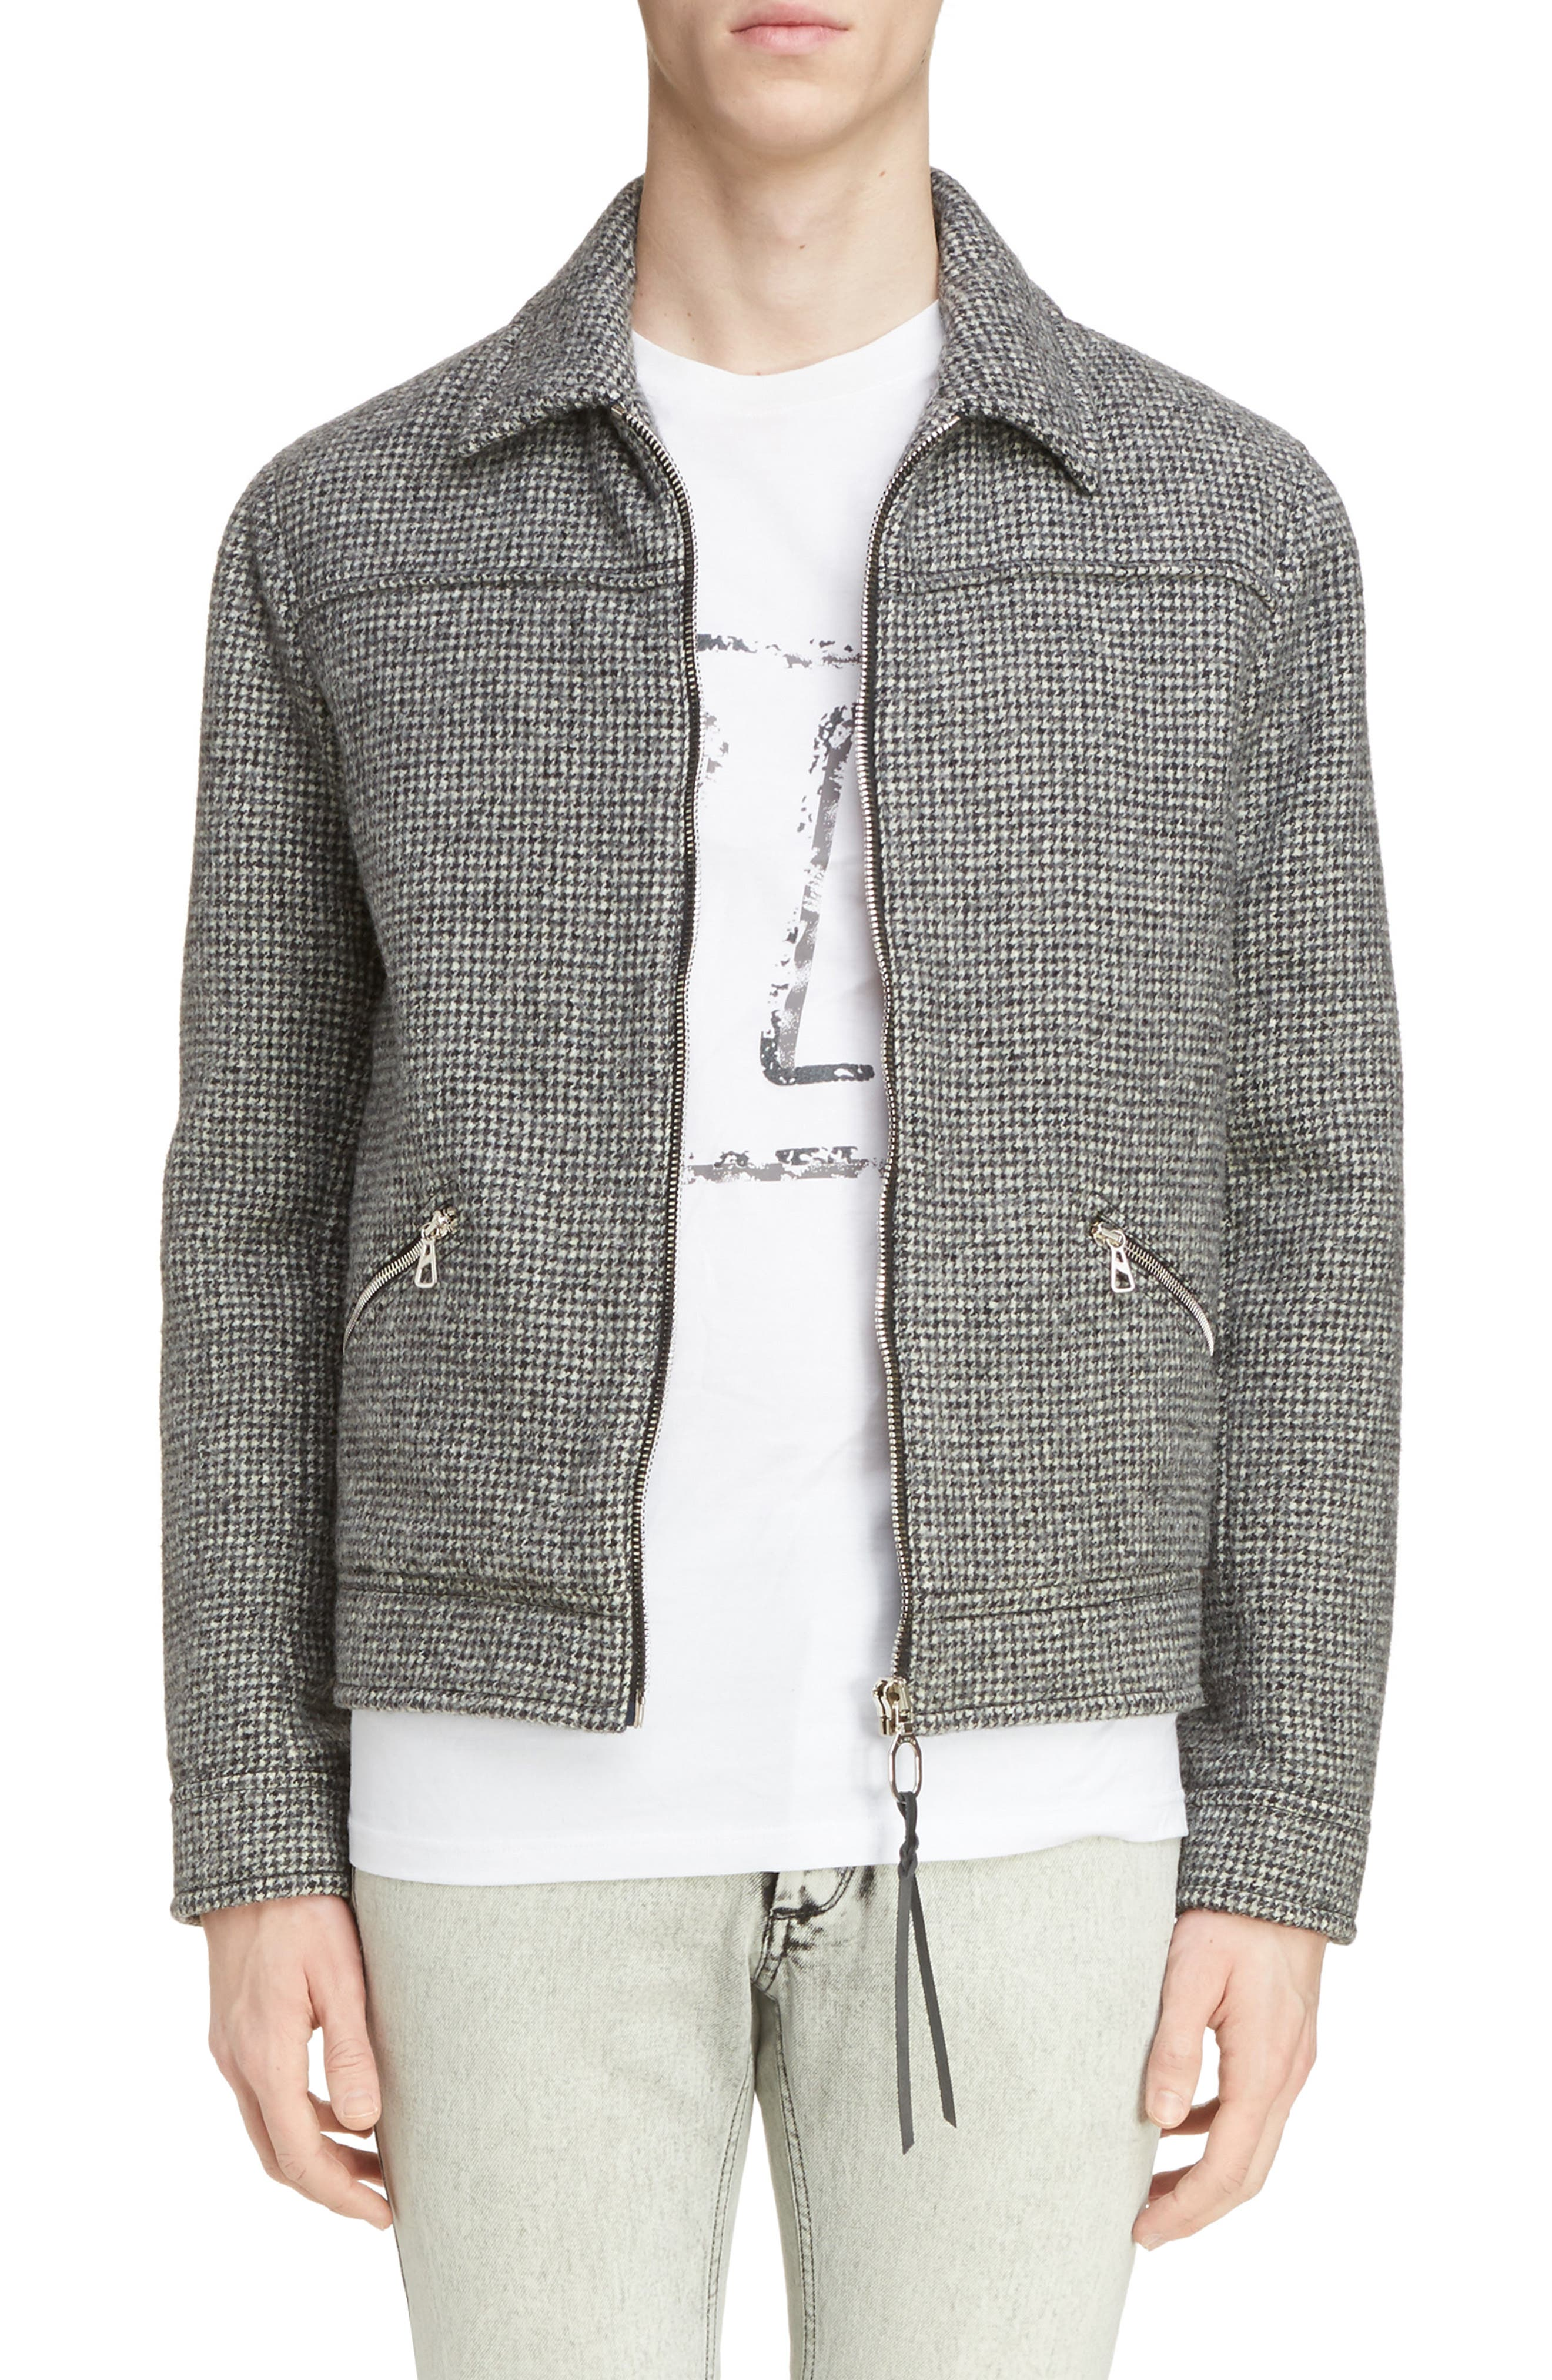 Lanvin Houndstooth Wool Zip Front Jacket